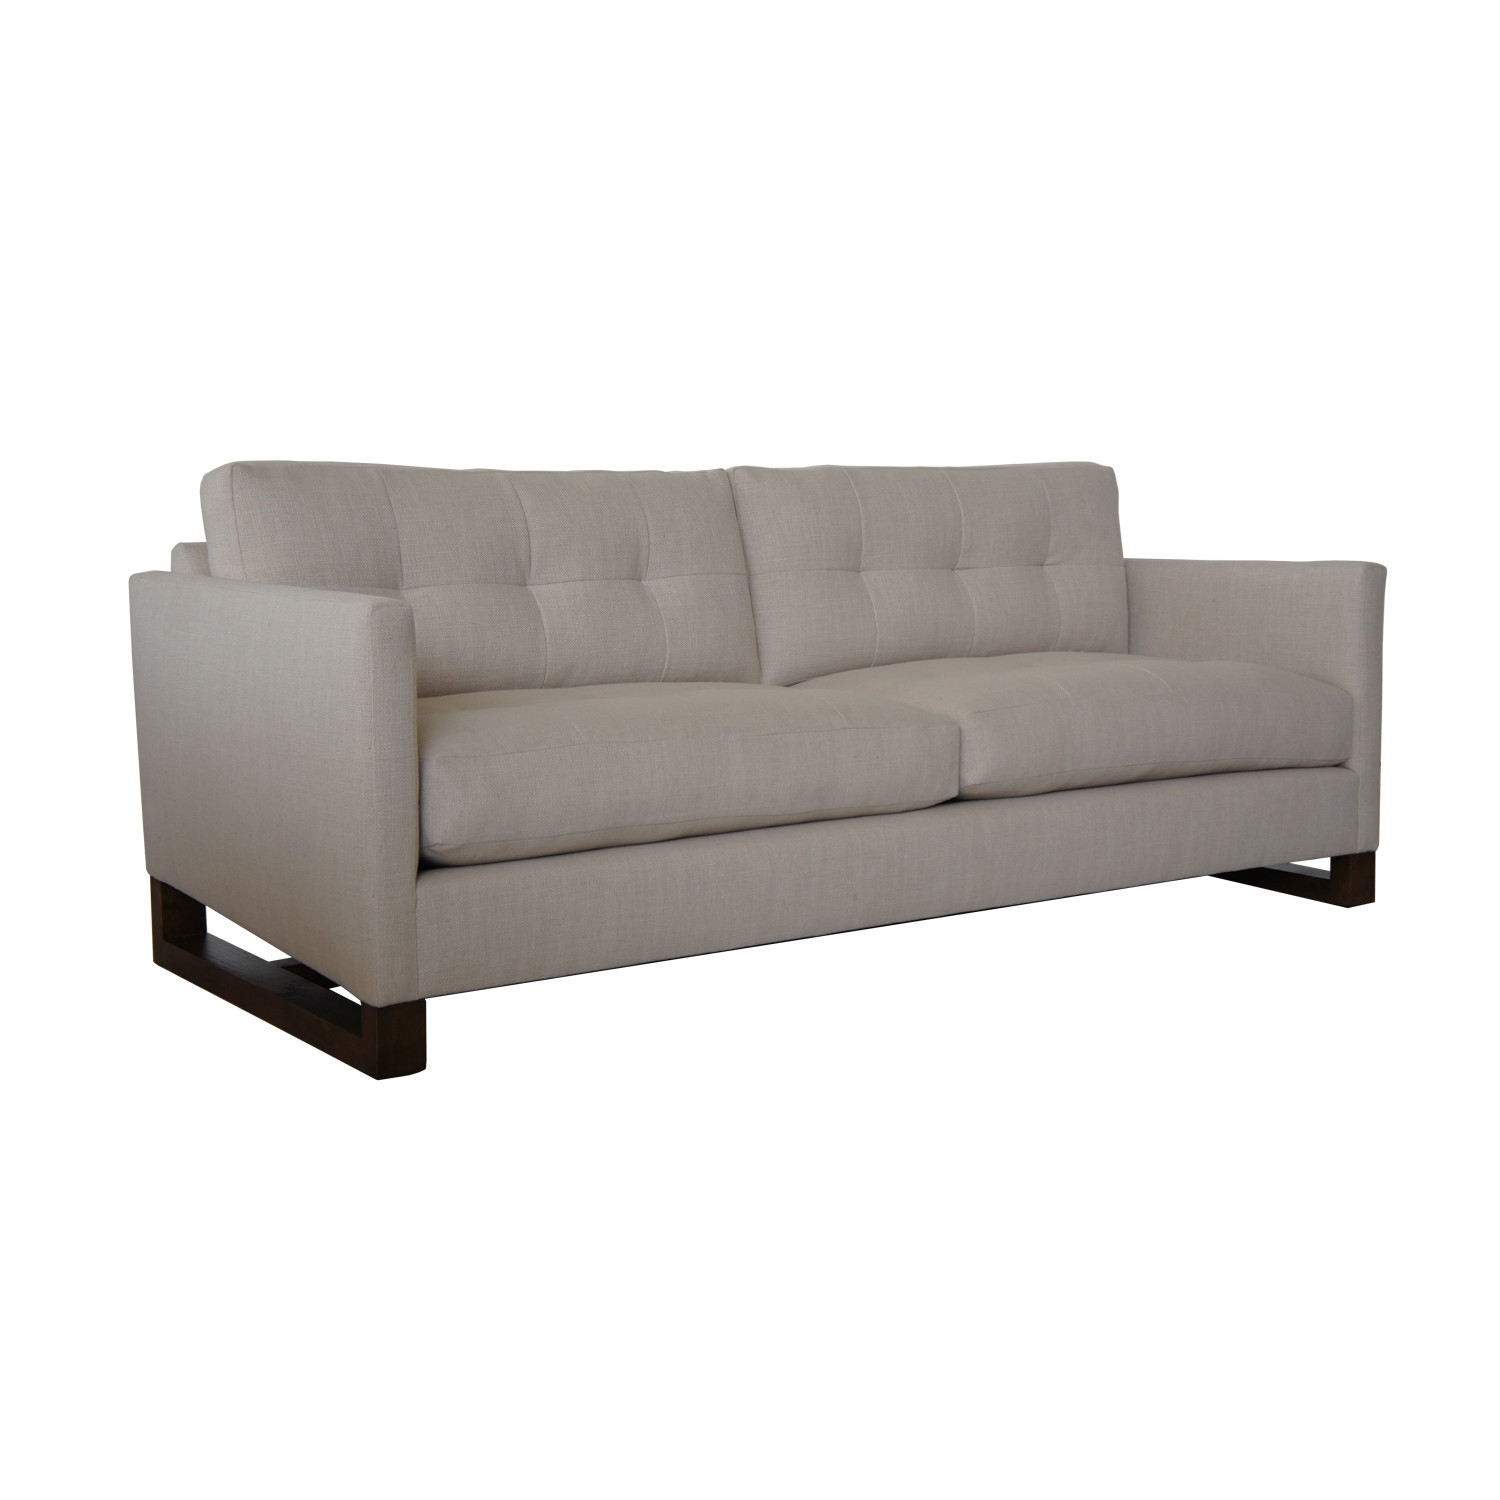 Phoebe sofa 84 l urbia imports touch of modern for Phoebe corner sofa